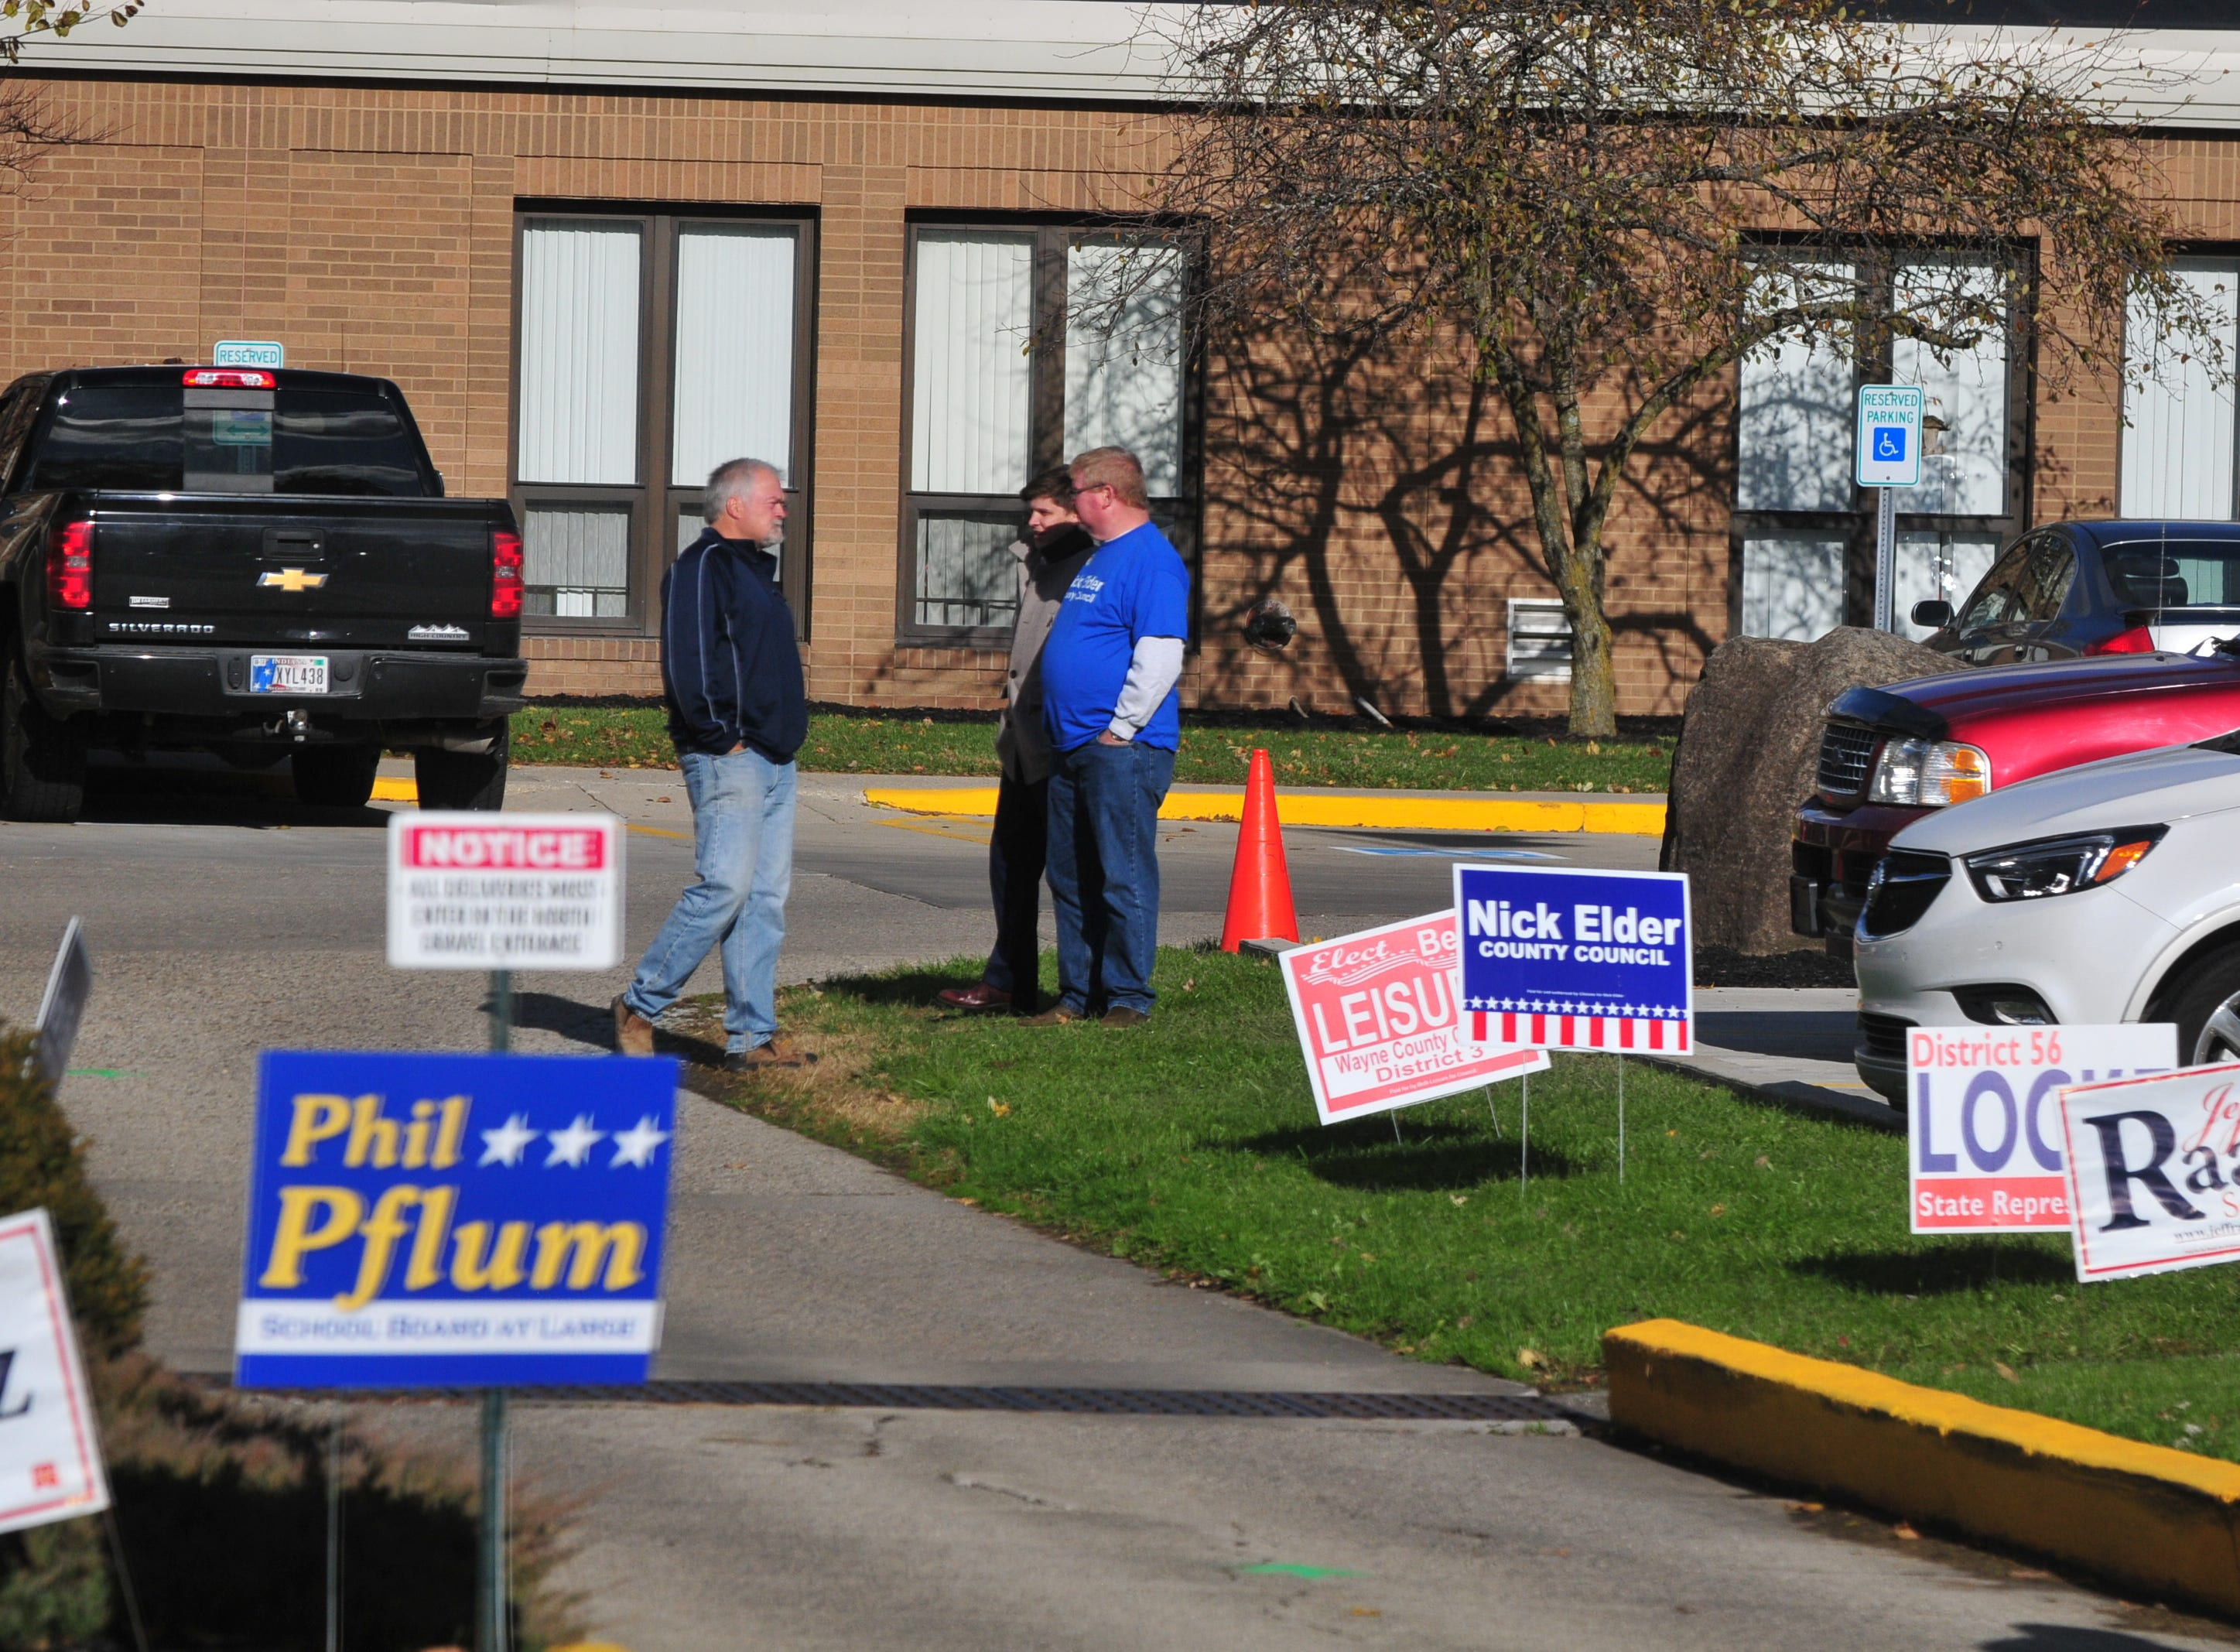 Republican candidate for state representative Brad Barrett (left) and Democratic candidate for Wayne County Council Nick Elder (center) chat outside the vote center at the Golay Center in Cambridge City on Tuesday, Nov. 6, 2018.